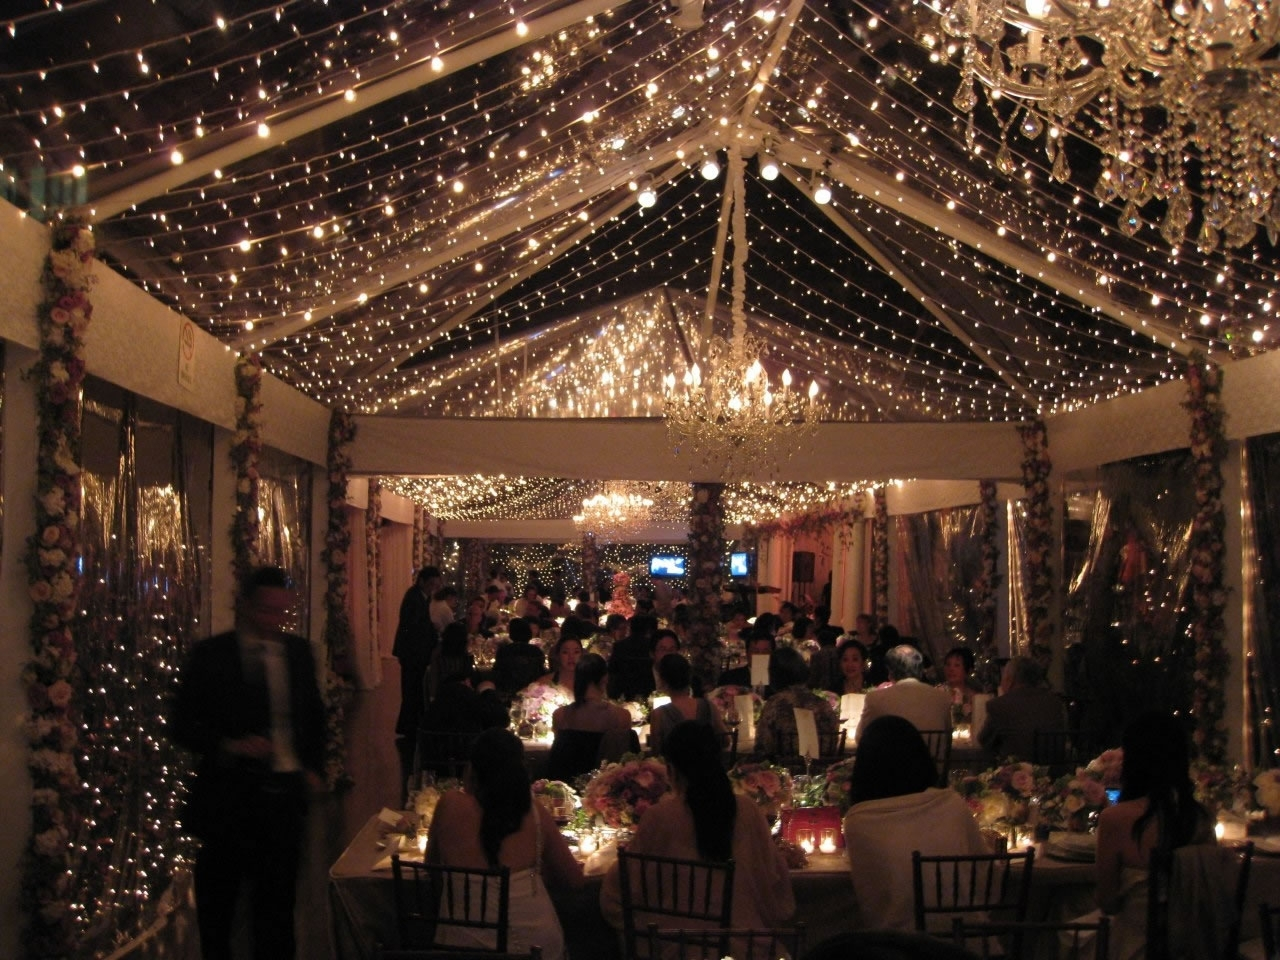 Lanterns And String Lights - Impact Lighting – Lighting | Audio inside Outdoor Lanterns For Wedding (Image 6 of 20)